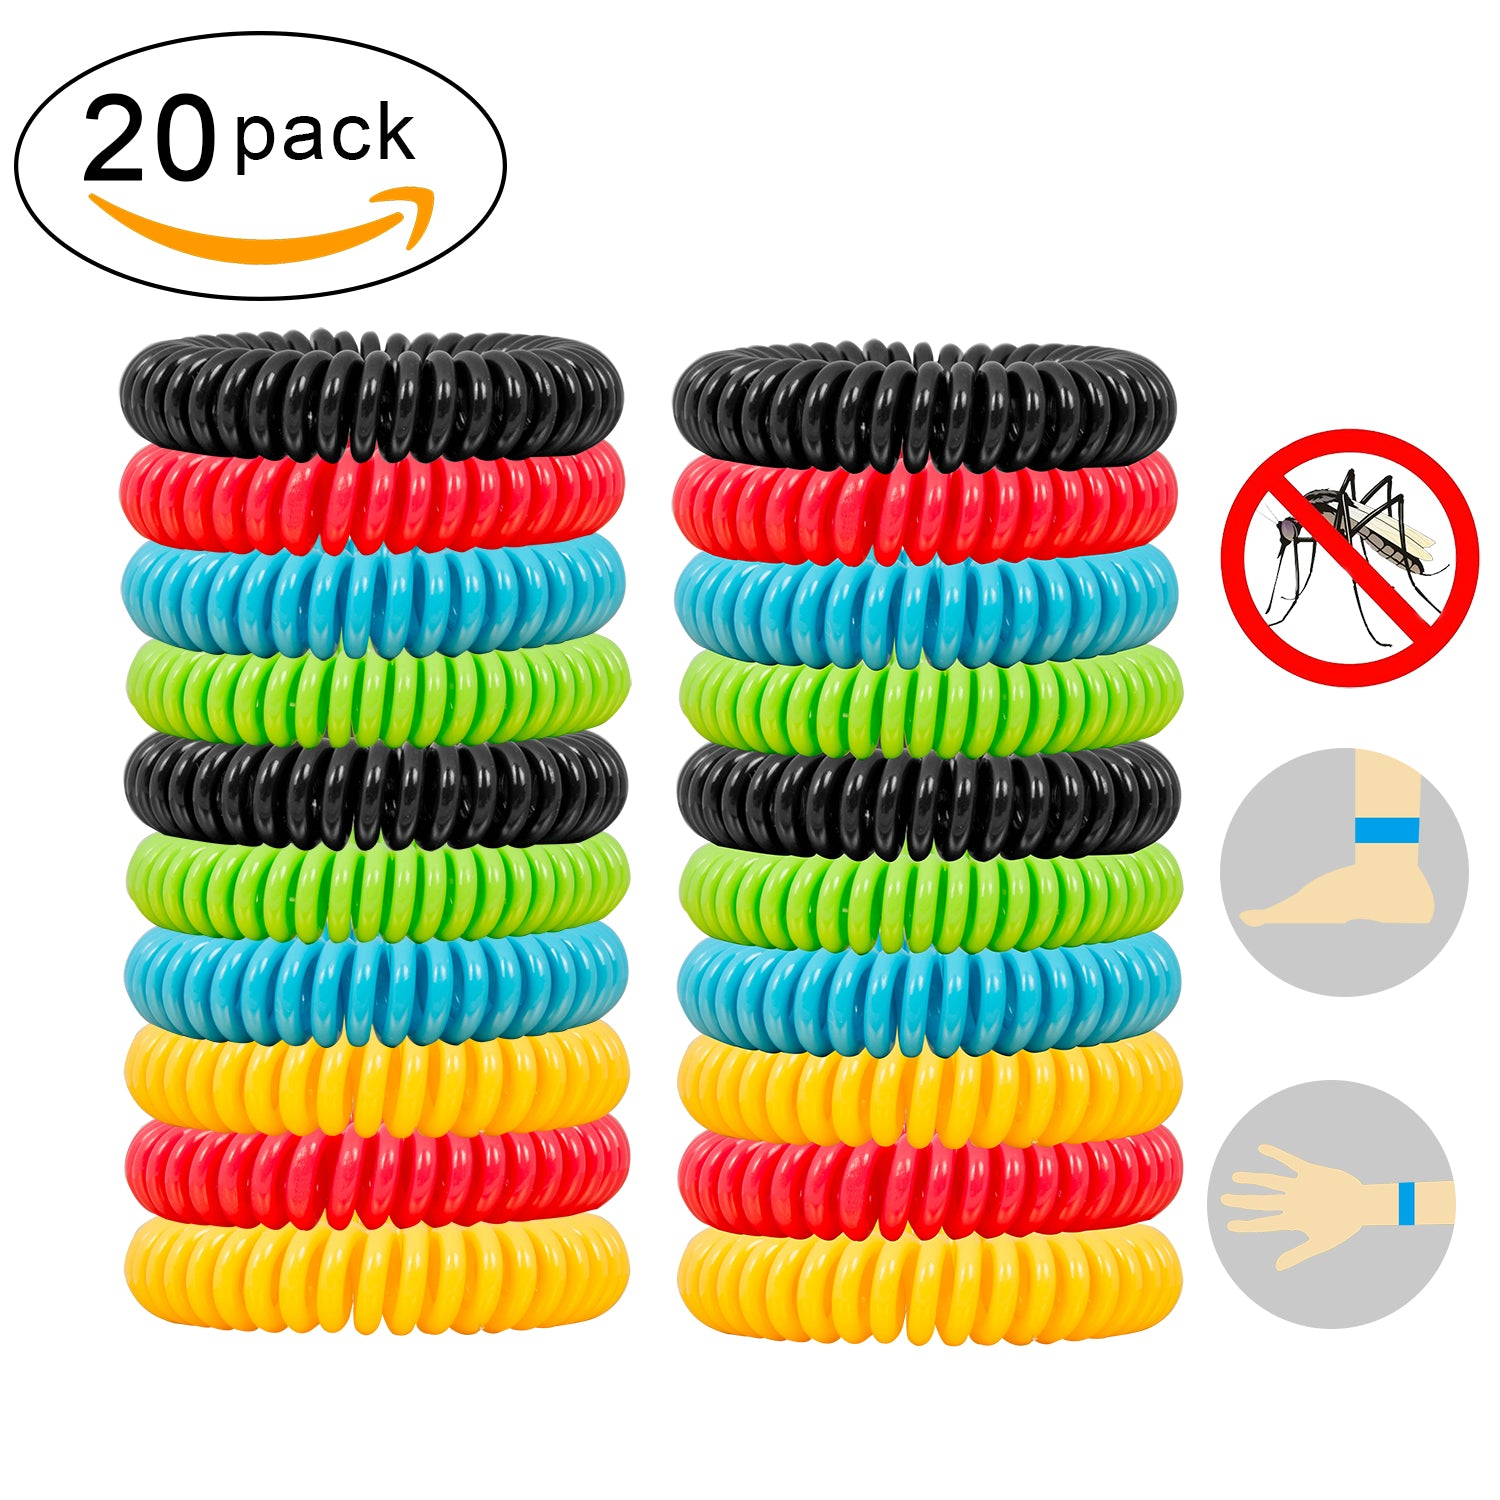 Natural Mosquito Repellent Bracelets Suhleir 20 Pack And 6 Patch Repeller Insect Bug Electronic Kit Waterproof Protection Up To